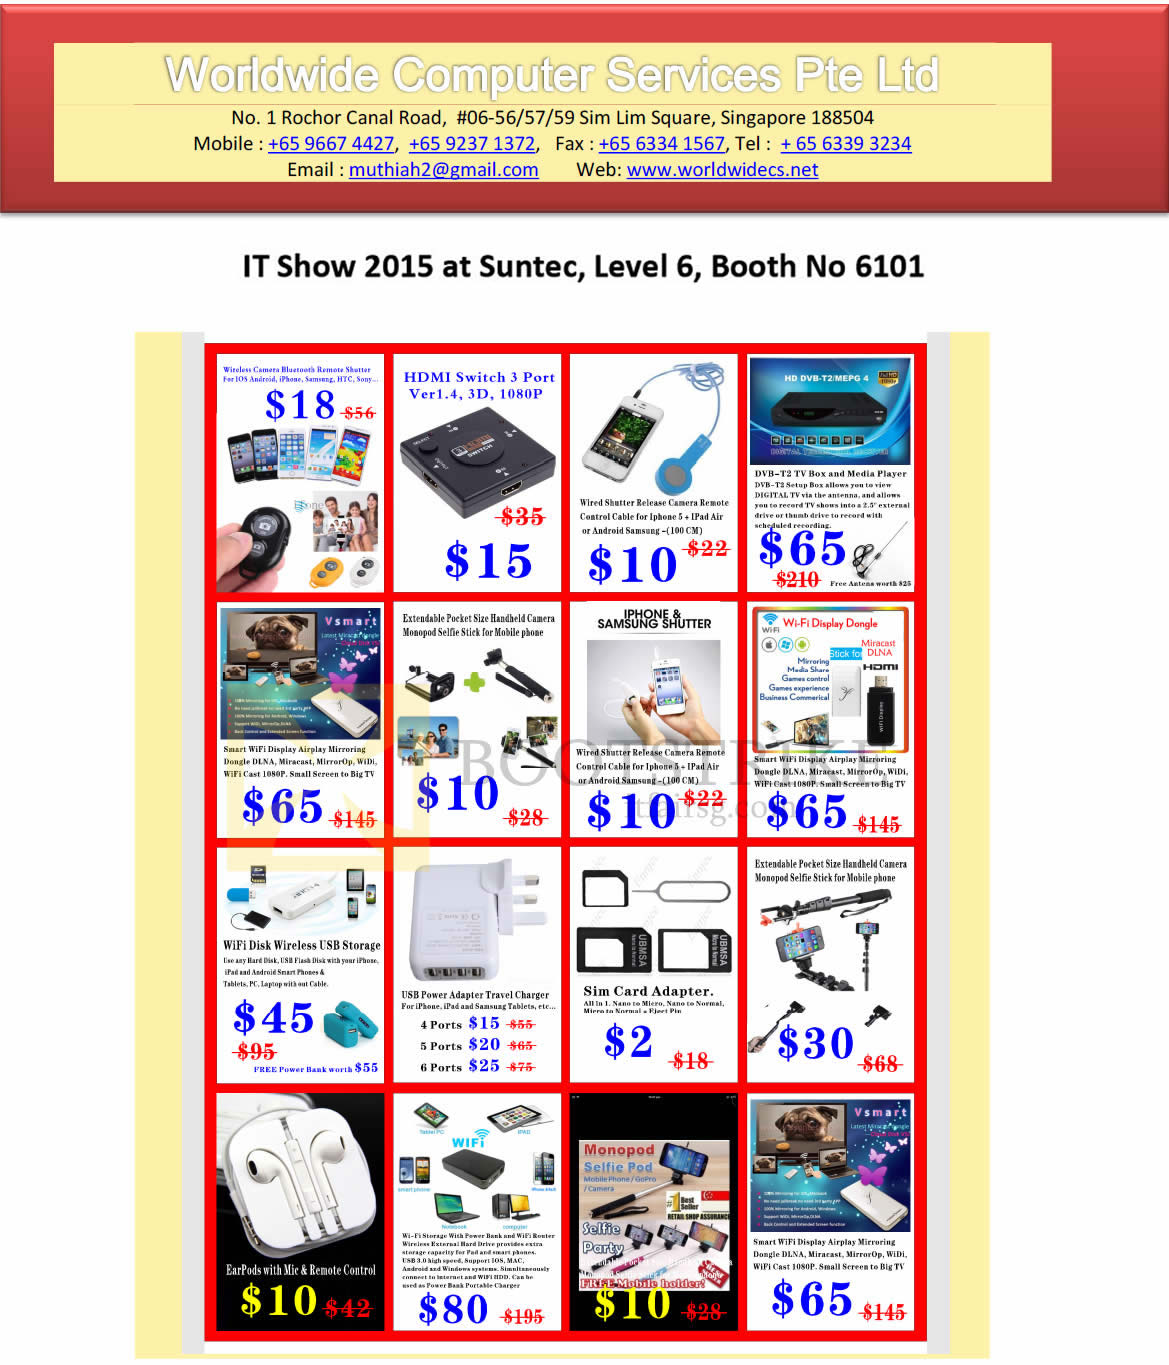 IT SHOW 2015 price list image brochure of Worldwide Computer Services Accessories, Sim Card Adapter, Power Adapter Travel Charger, Wireless USB Storage, Handheld Camera, Wi-fi Display Dongle